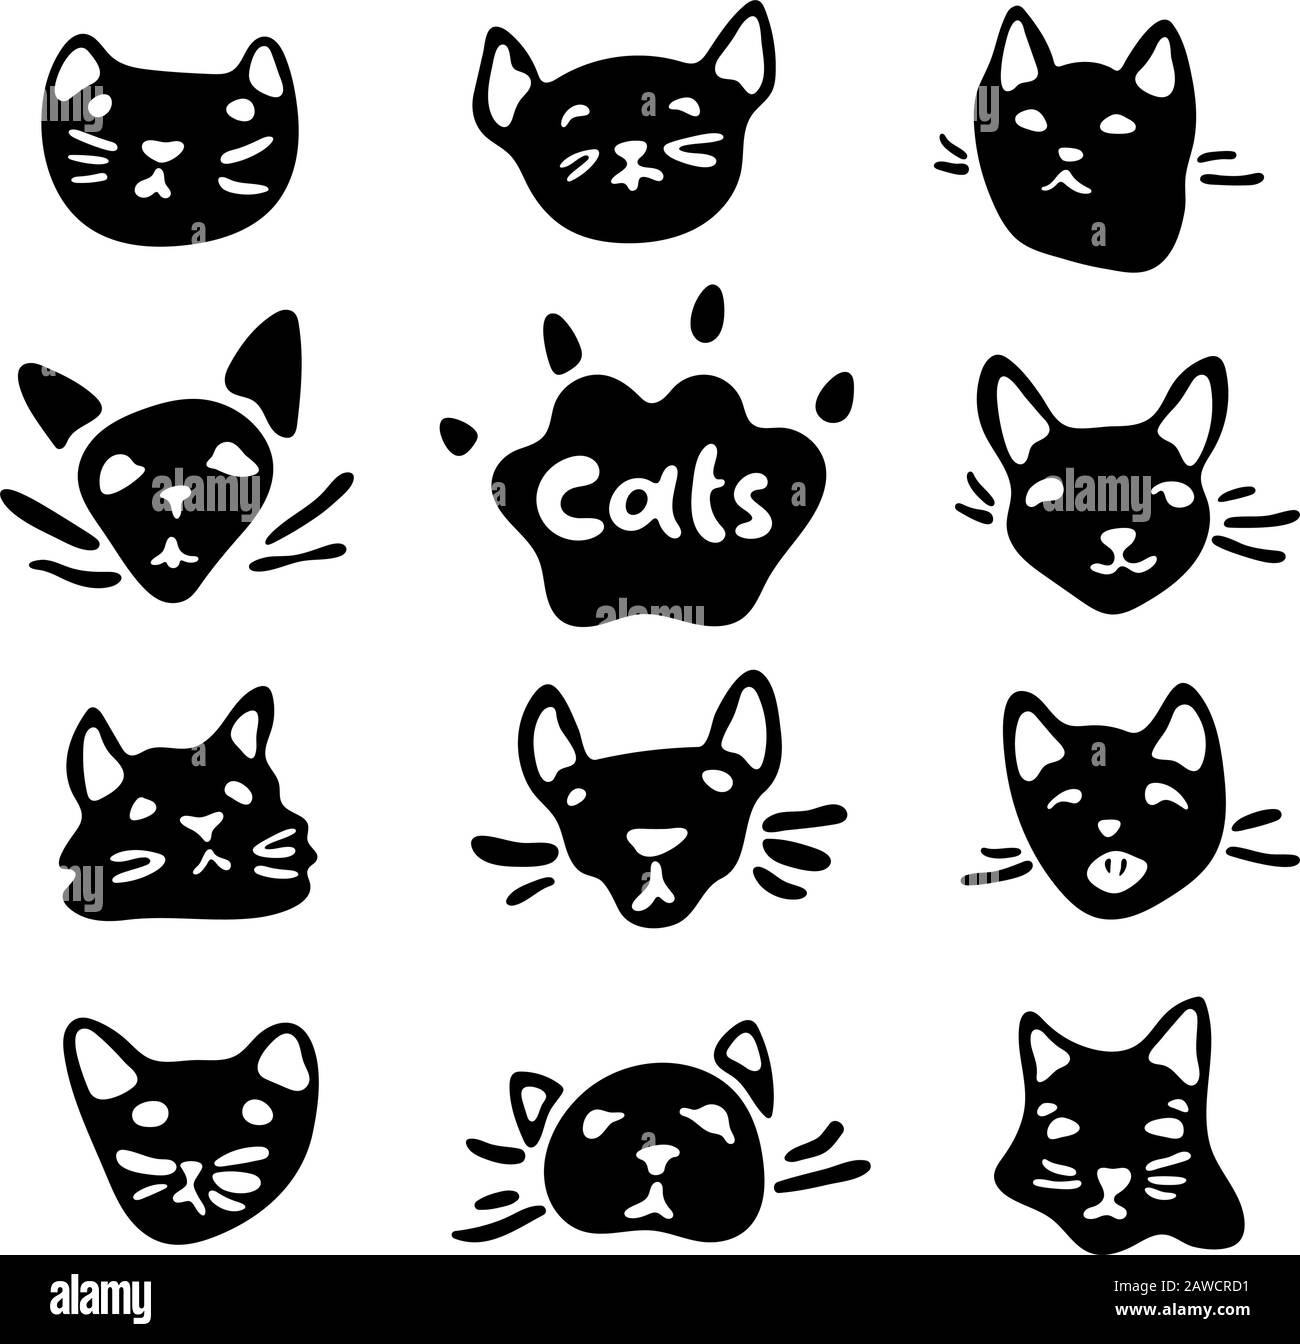 black and white cat characters cute black and white cats head set with cartoon emotions and